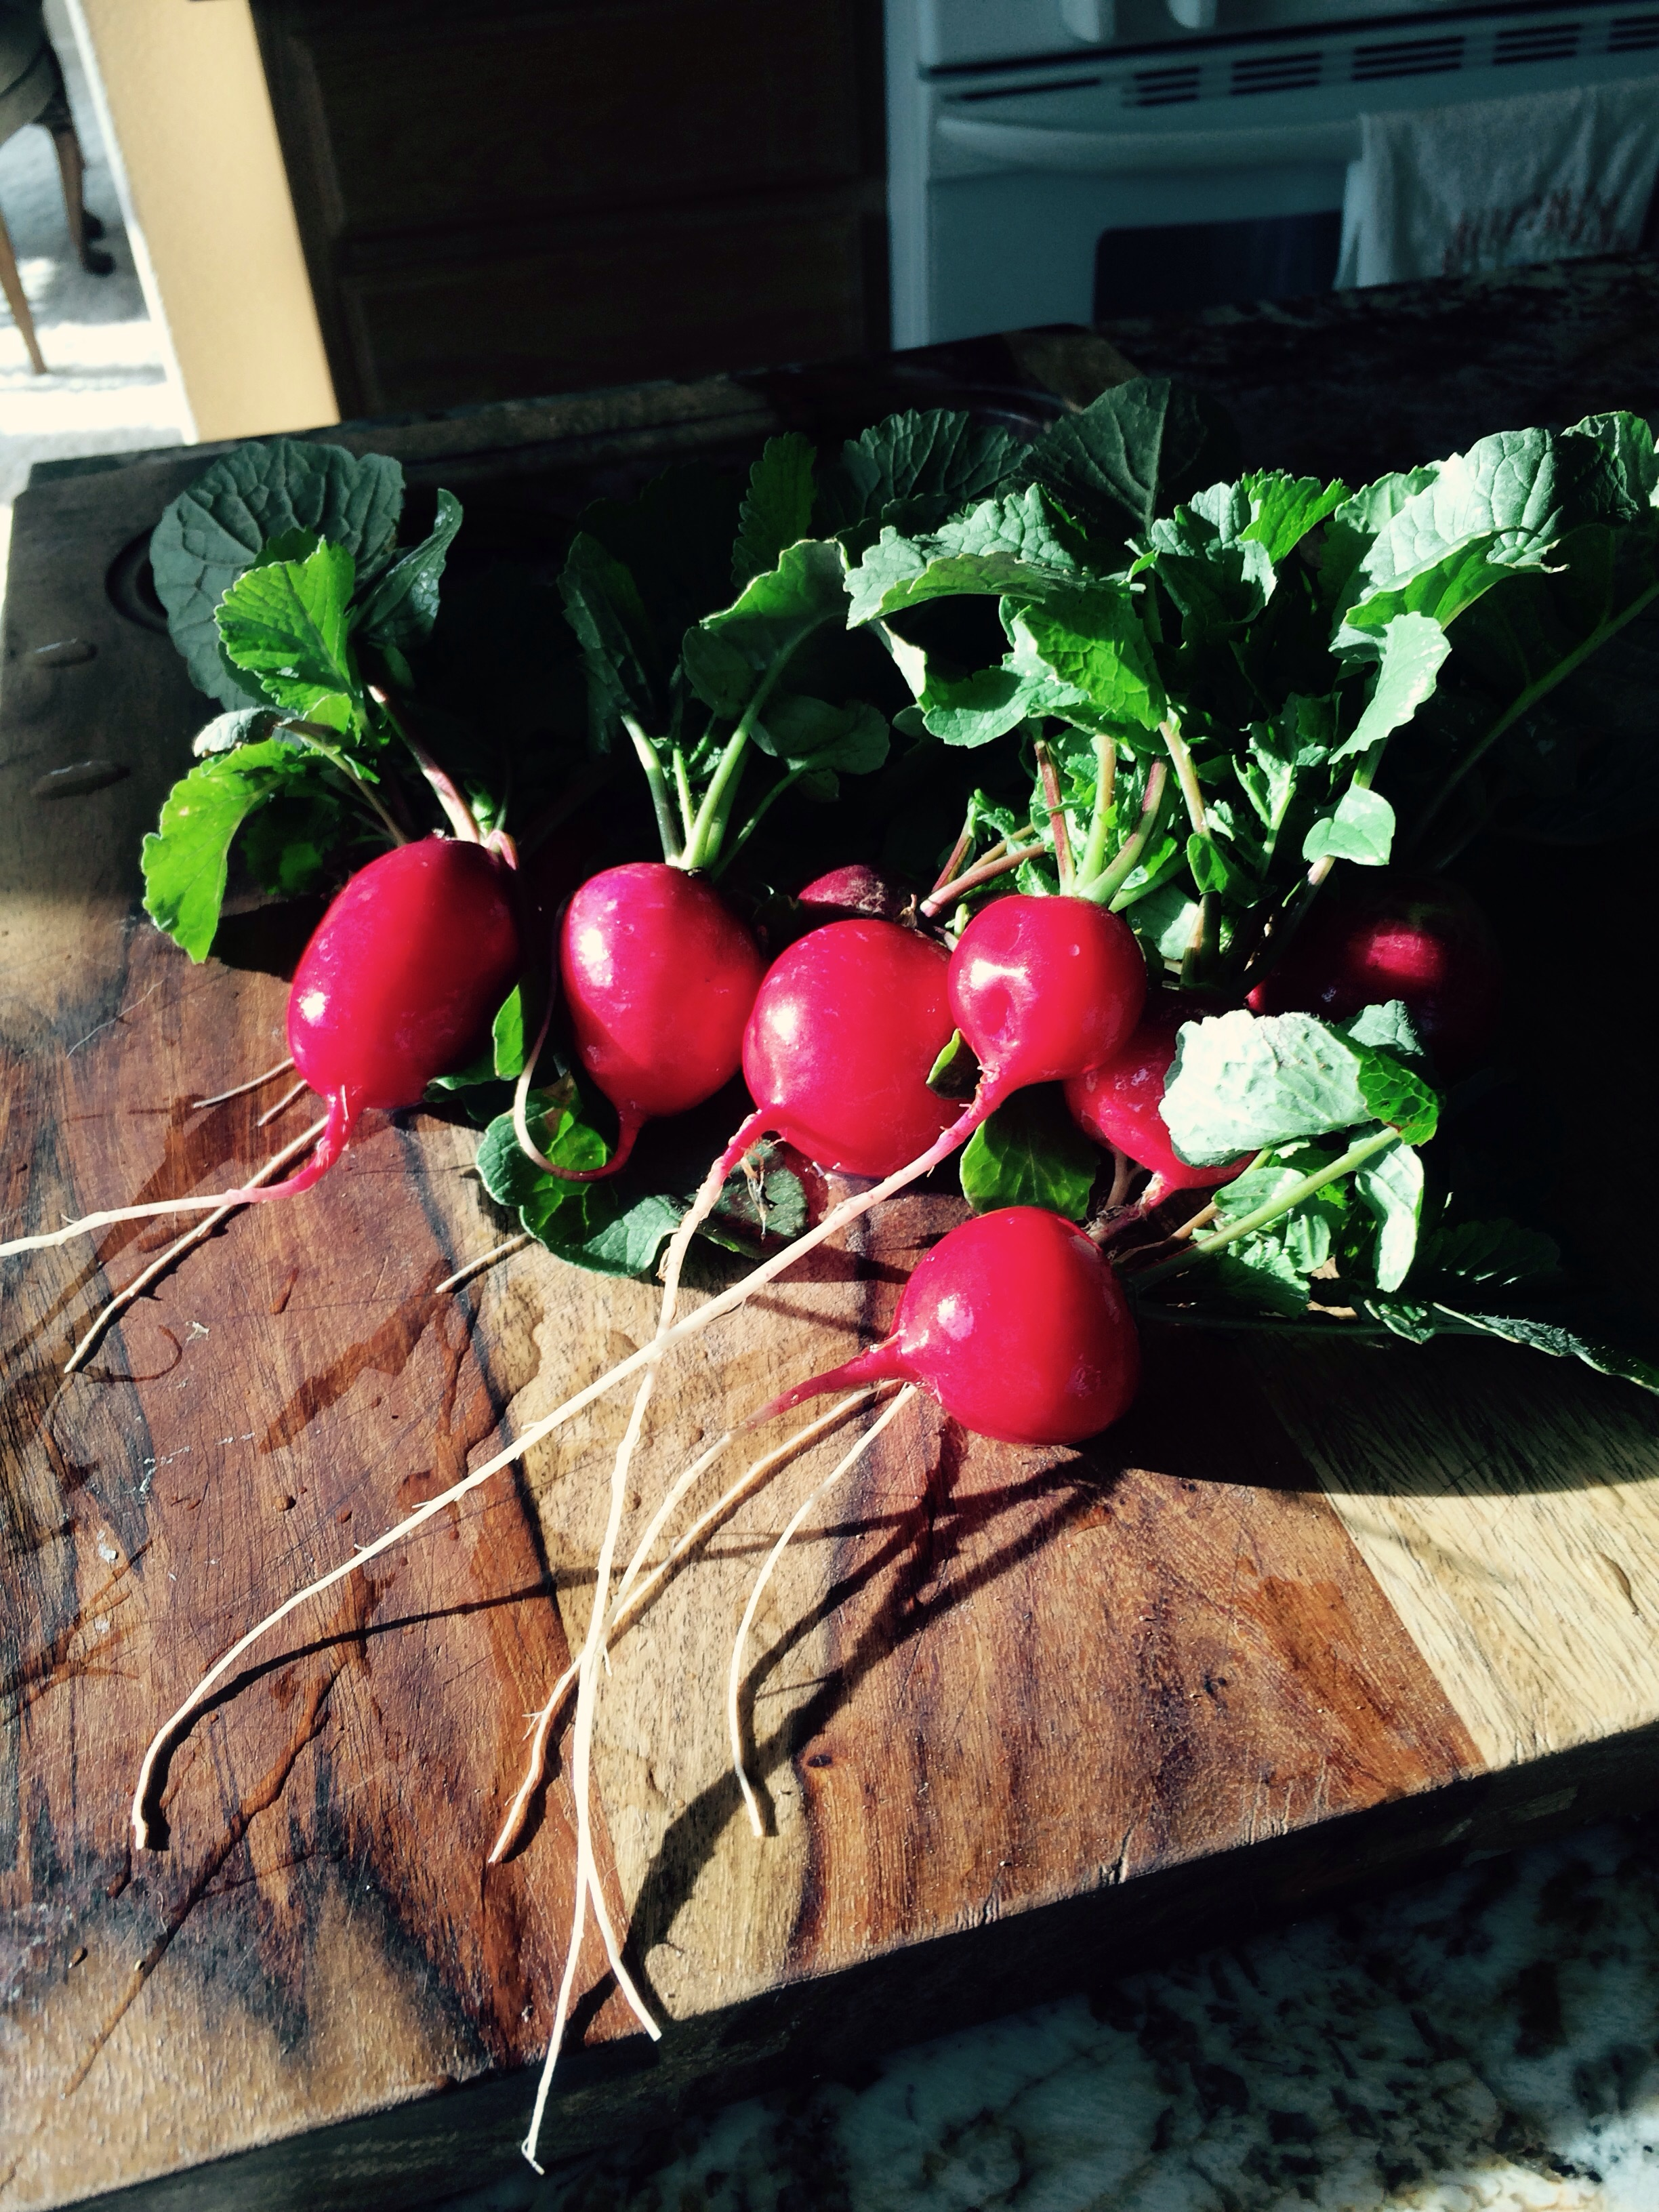 This mornings harvest we got 5 pounds of salad greens and the rube red sora bio dynamic radishes